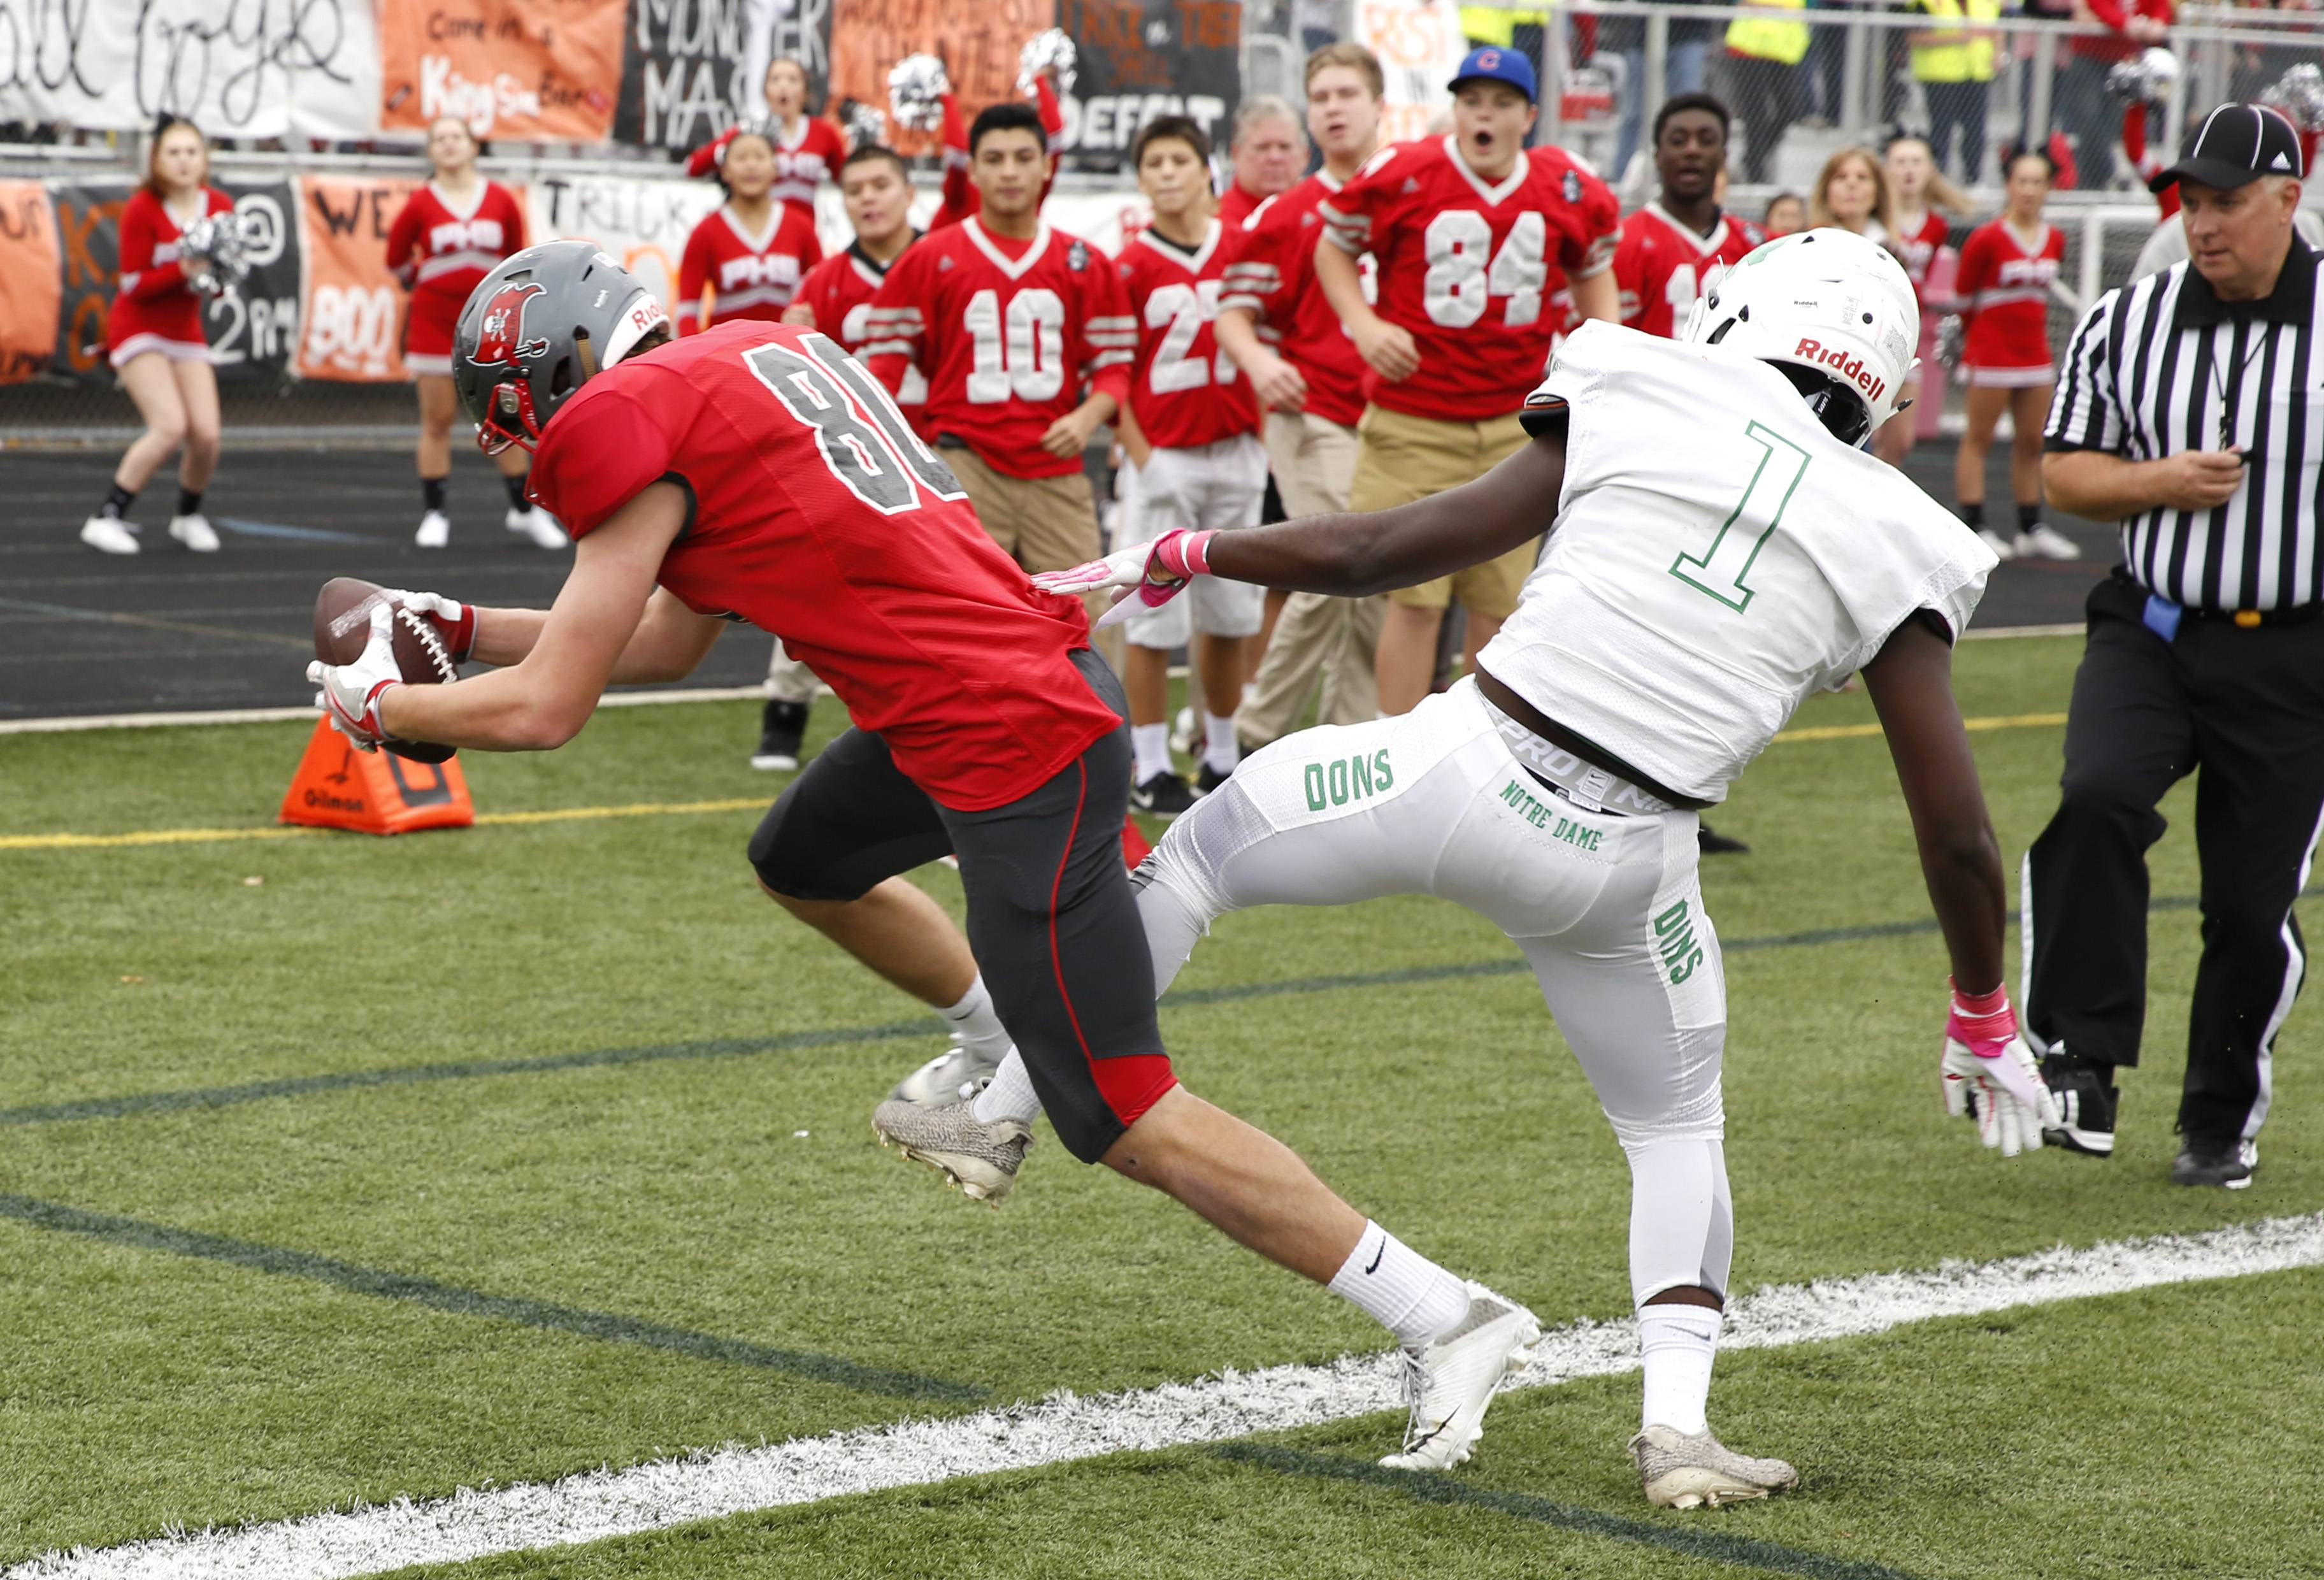 Palatine's DJ Angelaccio (10) gets both feet in bounds as he scores the Pirates' first touchdown against Notre Dame during the first round of the Class 8A football playoffs in Palatine.